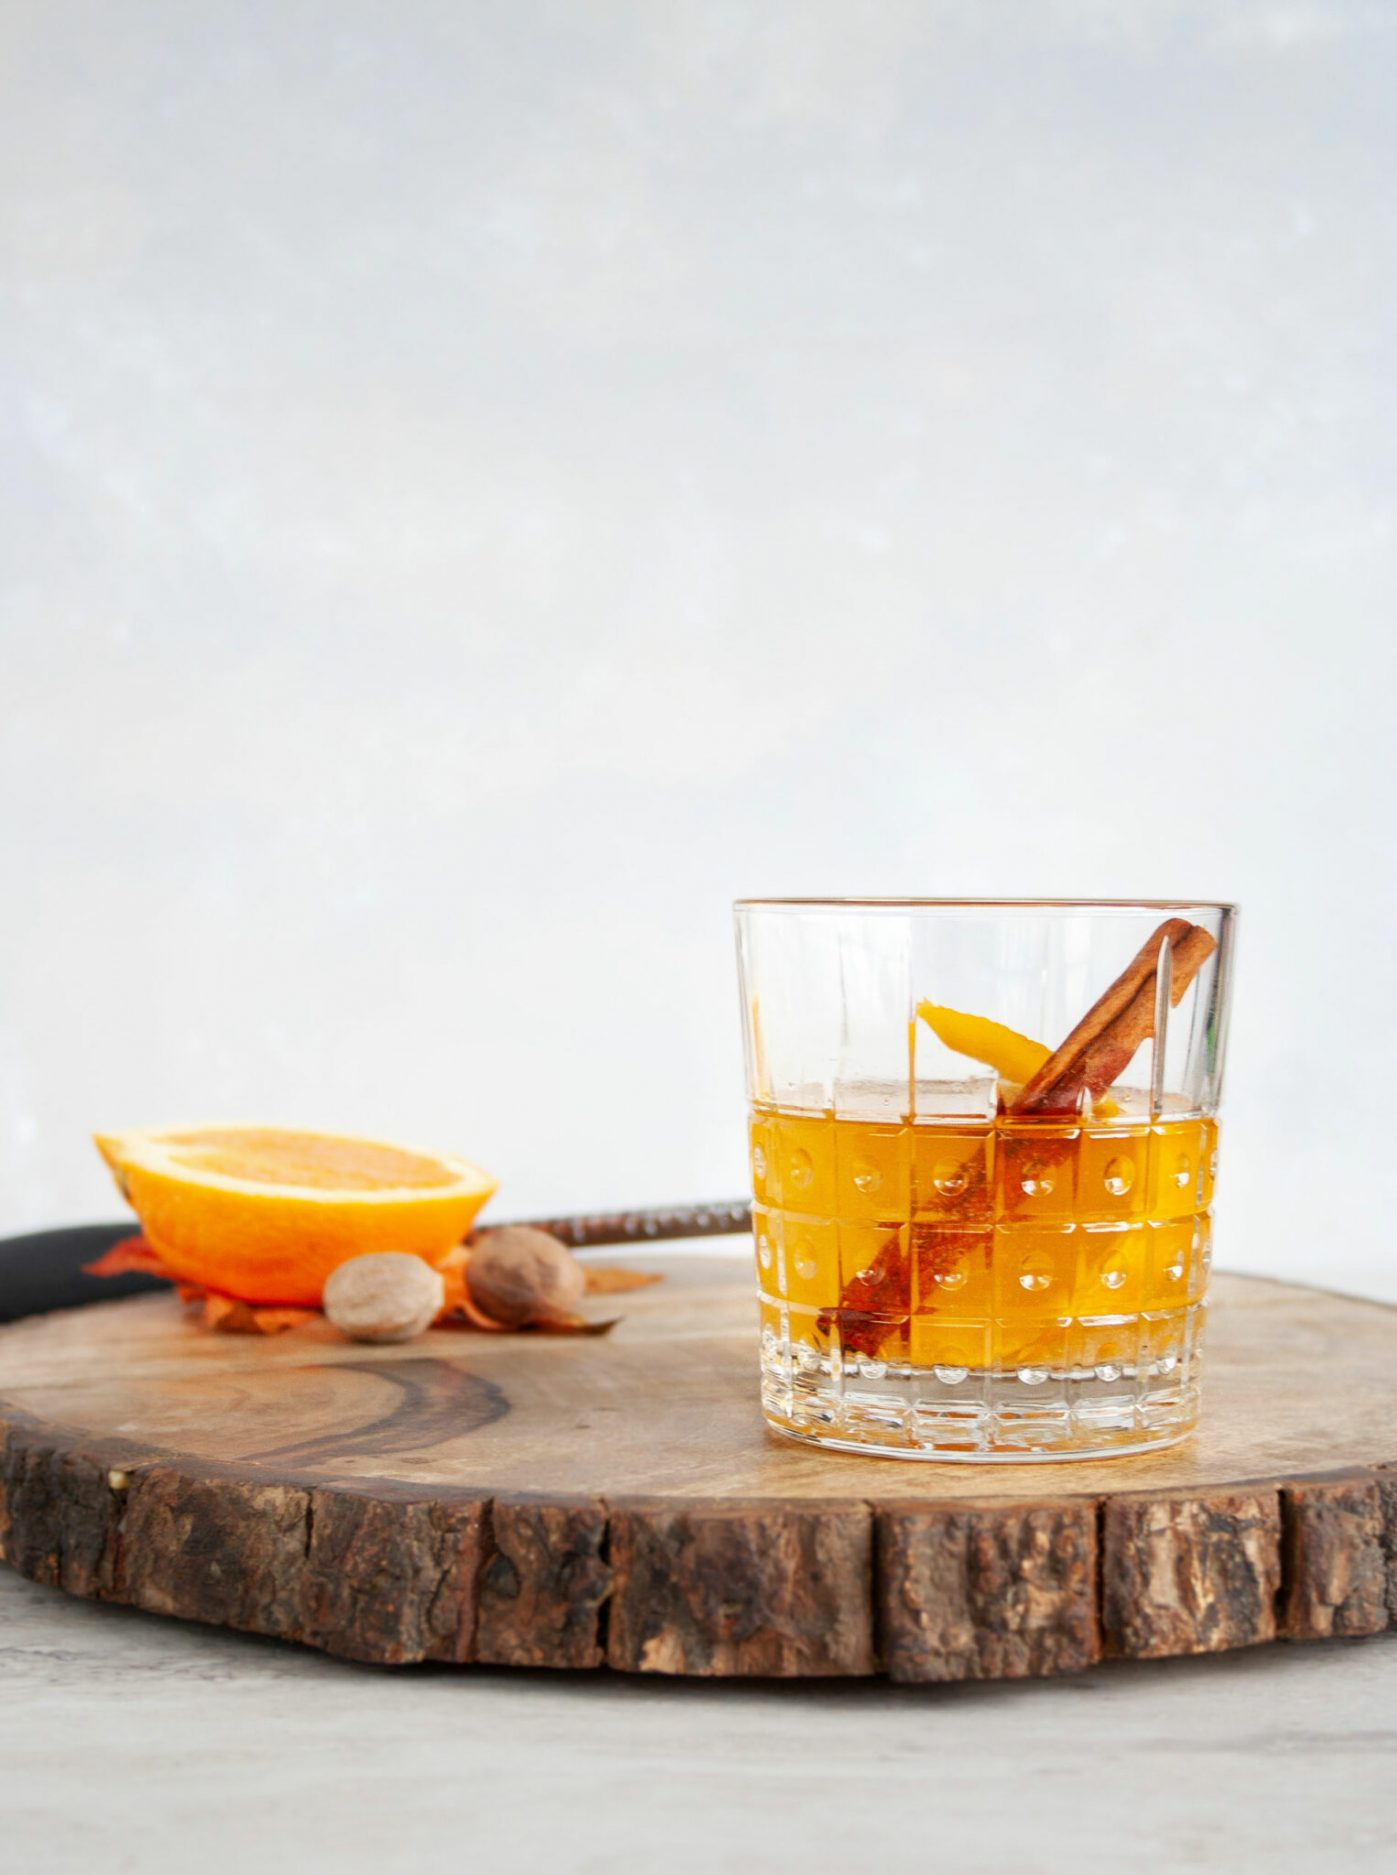 A fall bourbon cocktail that uses apple jelly for a spiced and fruity version of an Old Fashioned. This jam cocktail uses apple jelly to make a cinnamon and apple drink that is lightly sweet and perfect for fall entertaining. We love this Este Bormioli Rocco glass. #ElleTalk #sponsored #fall #cocktail #bourbon